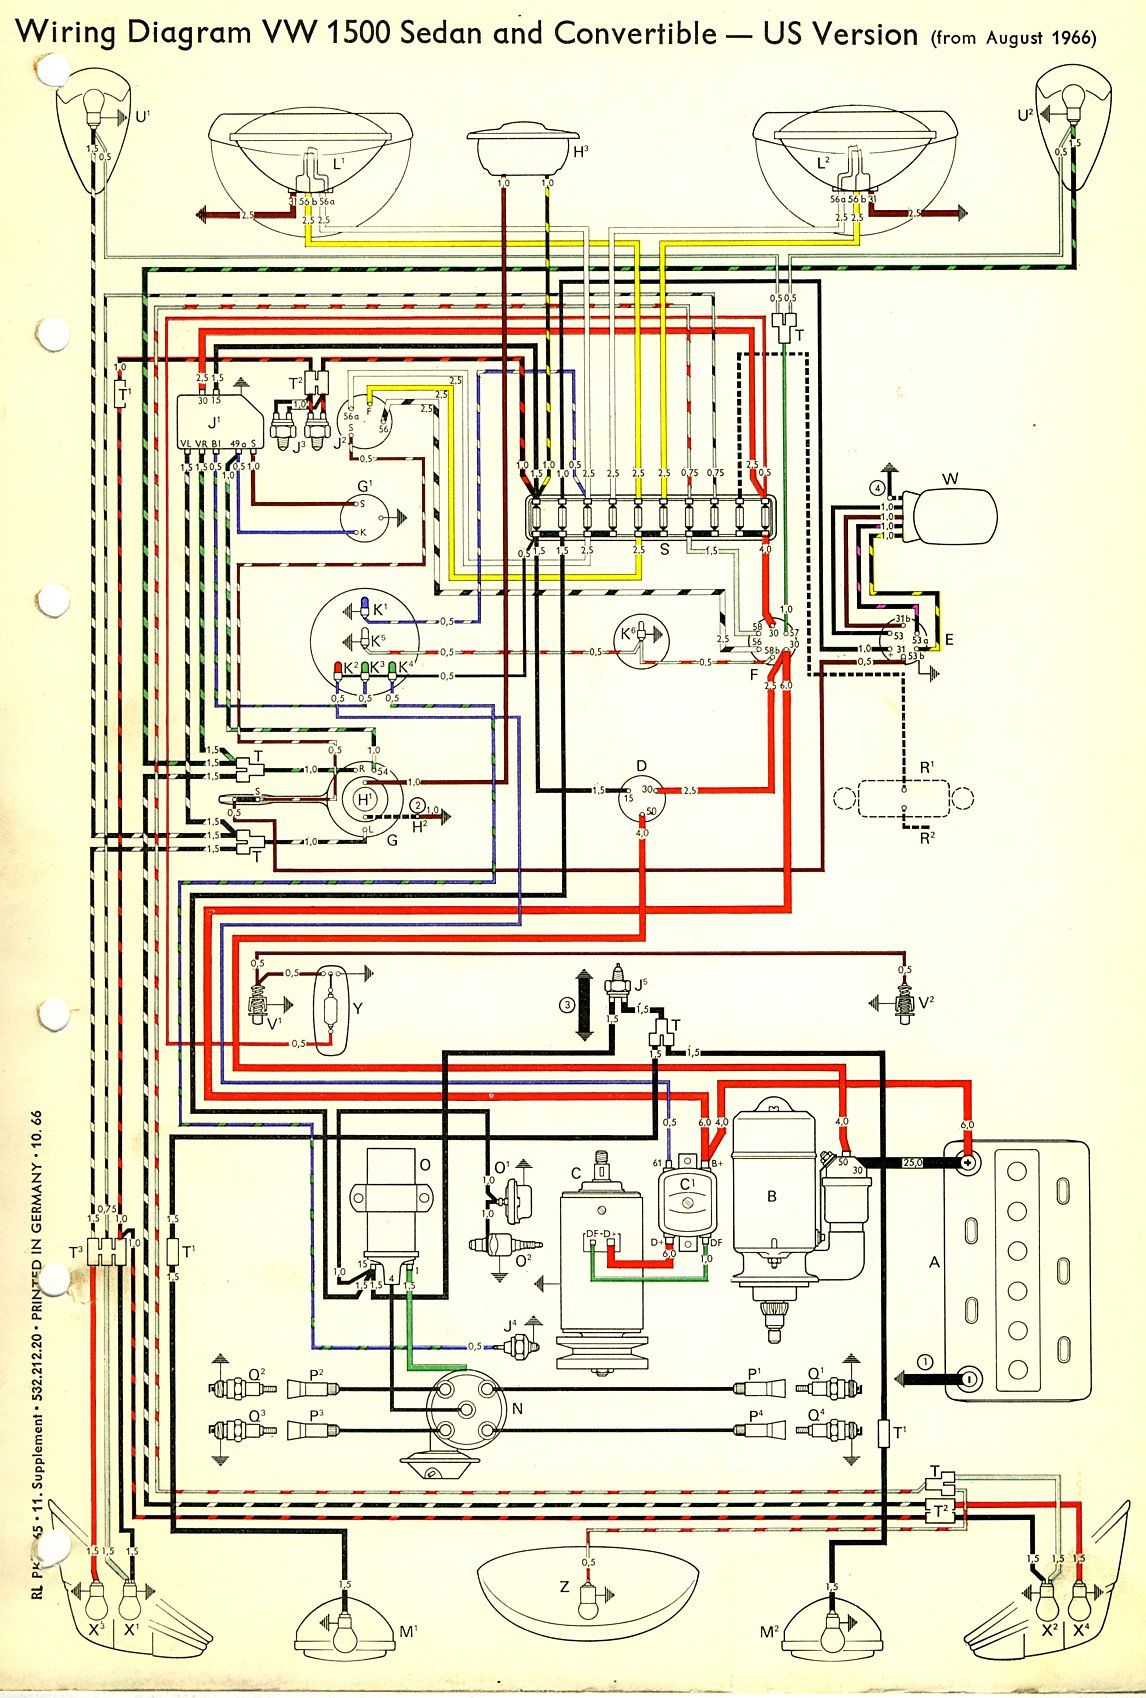 1adf990c0efb617c789fdd21338448b0 1967 beetle wiring diagram (usa) thegoldenbug com best 1967 vw 1968 vw beetle wiring diagram at bayanpartner.co